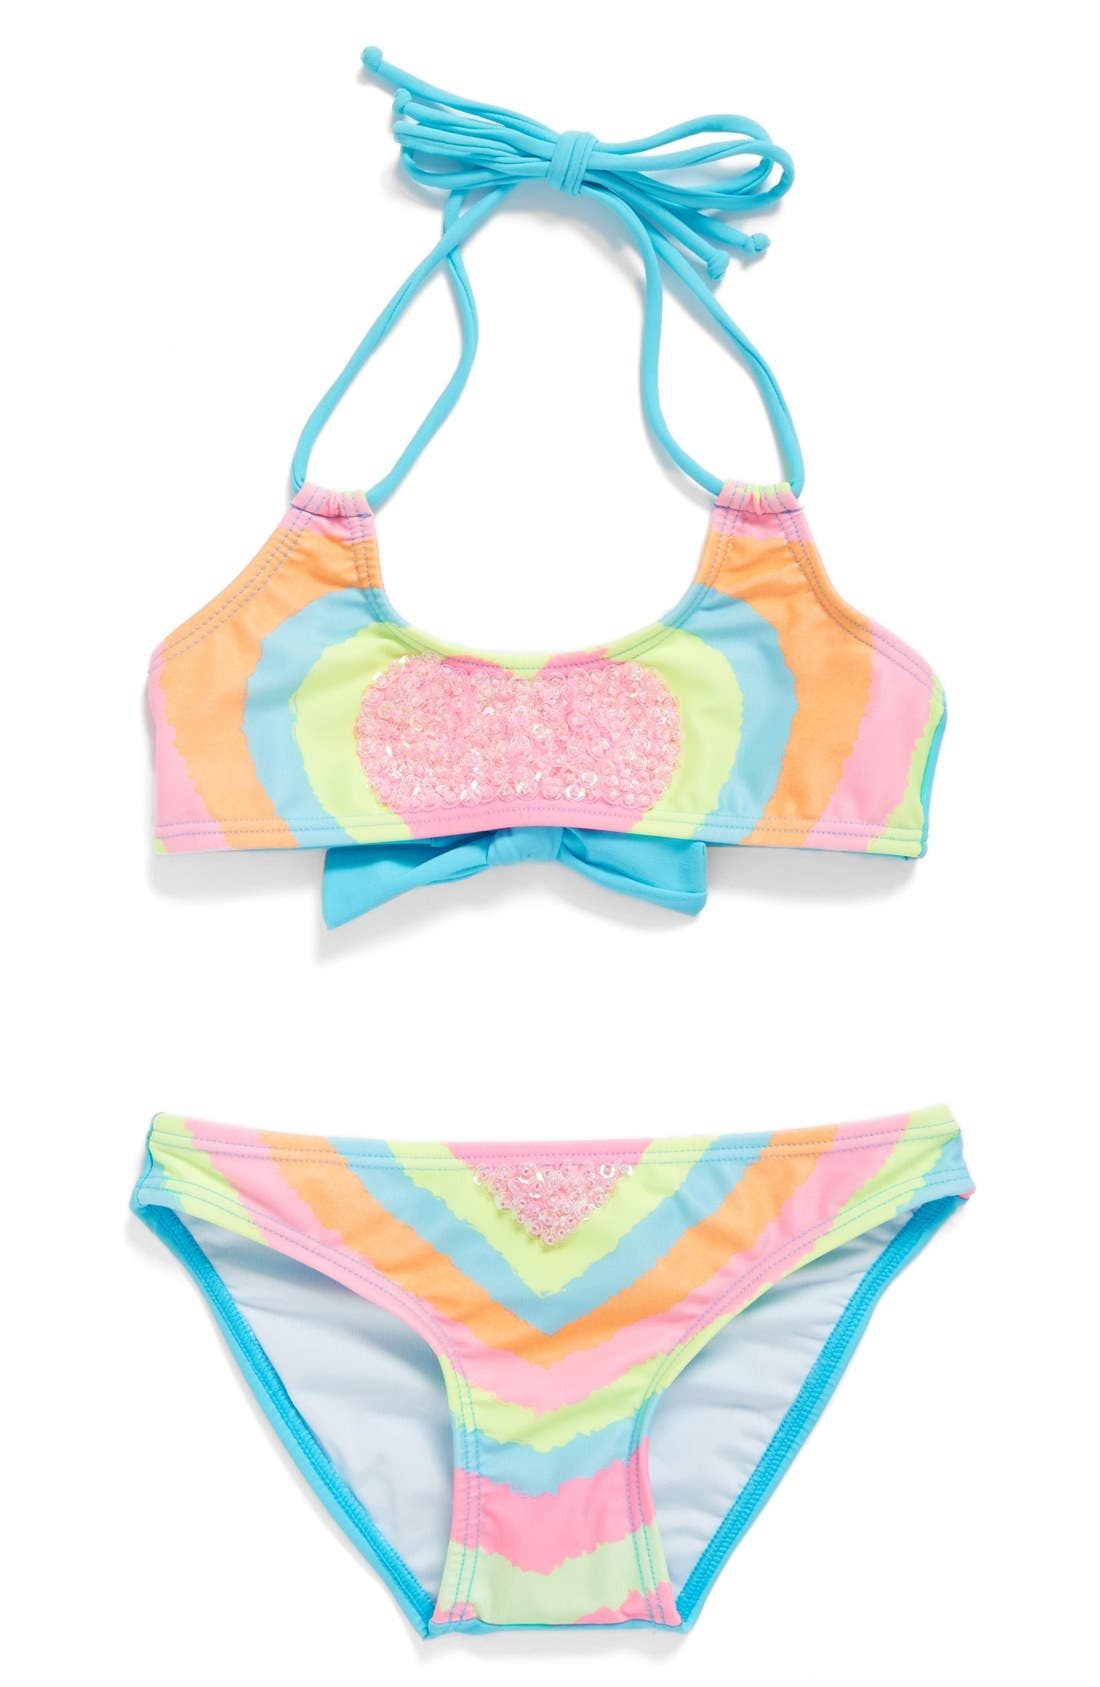 PILYQ Sequin Embellished Two-Piece Swimsuit